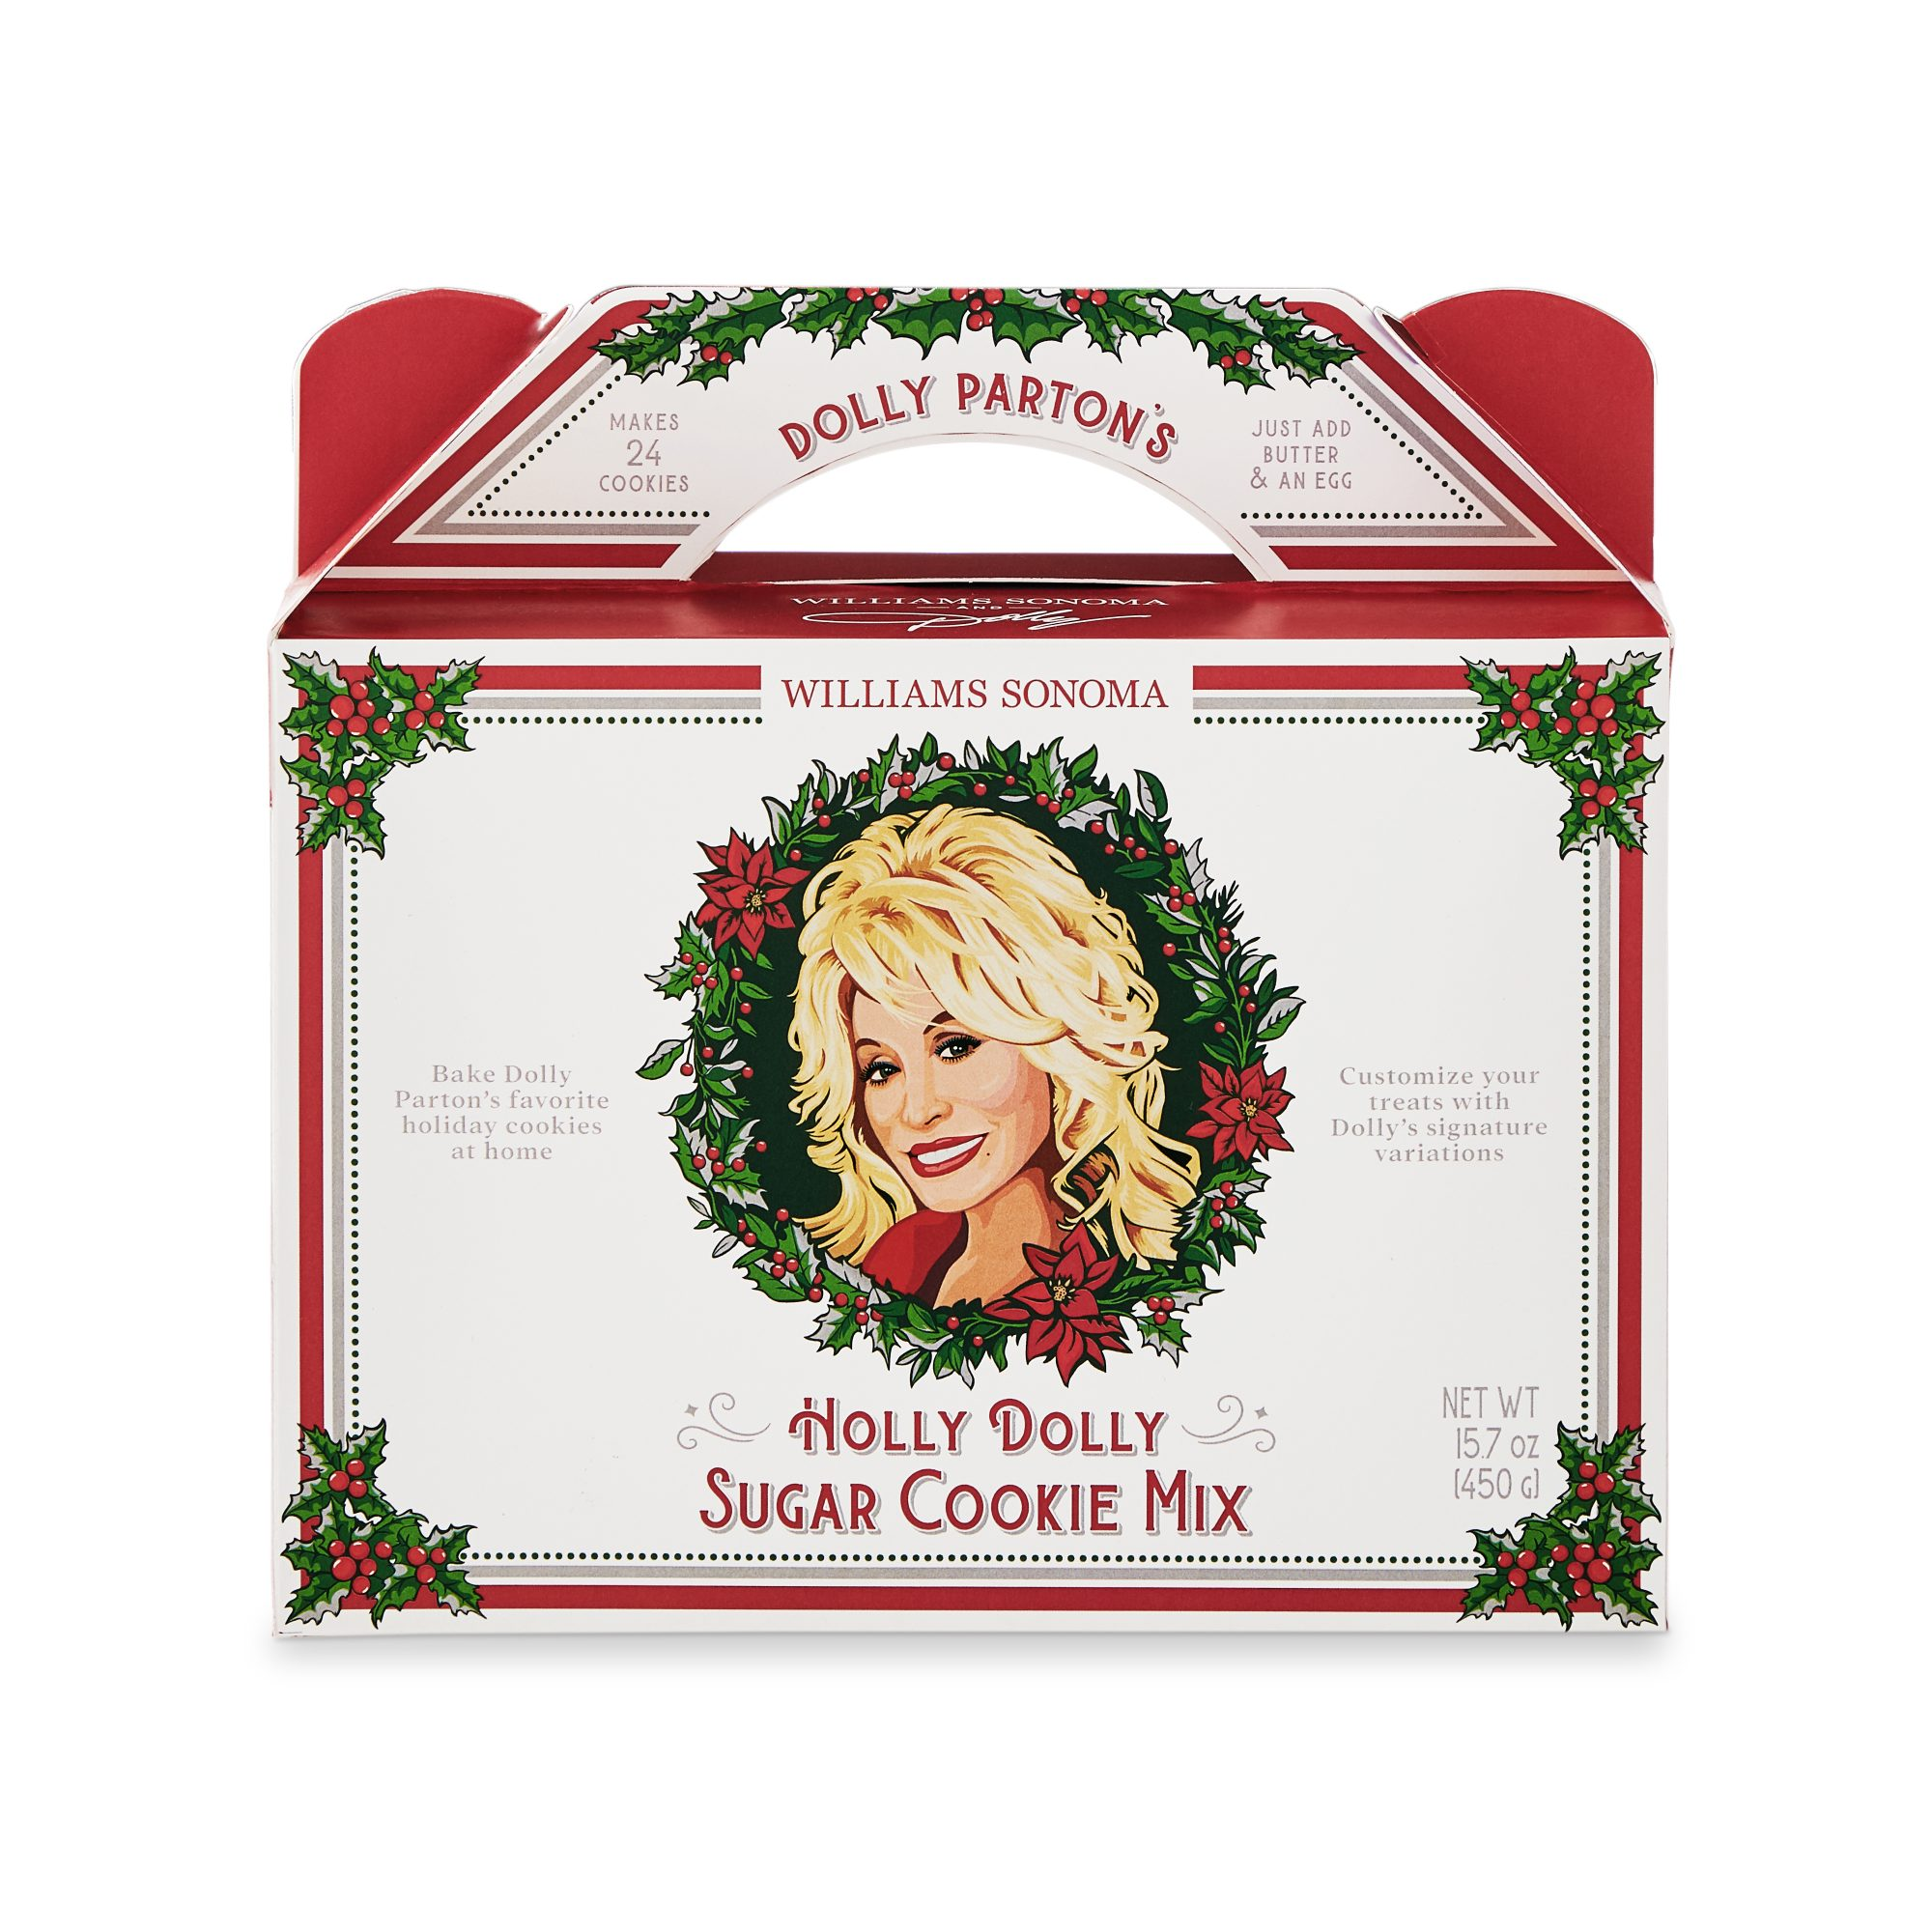 Dolly Parton's Holly Dolly Sugar Cookie Mix